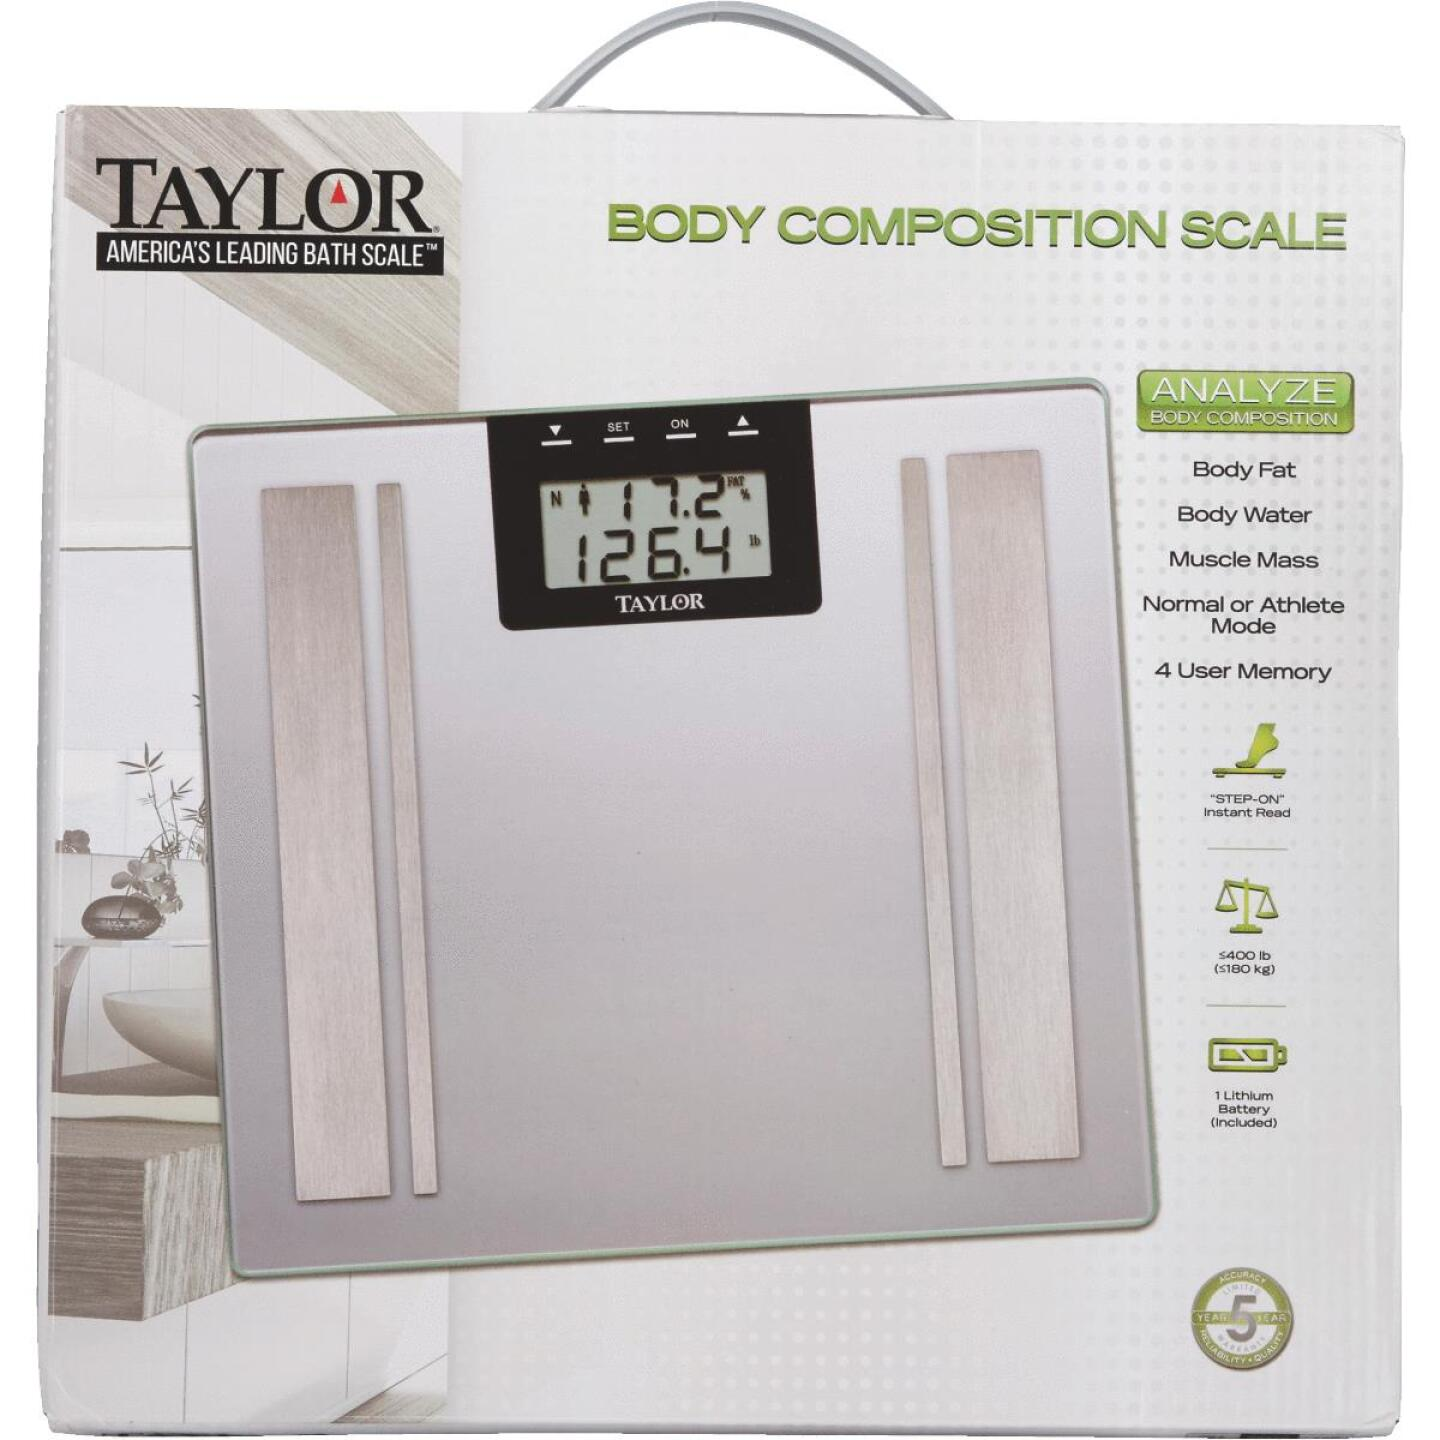 Taylor Digital 400 Lb. Body Analyzer Bath Scale, Black Image 2